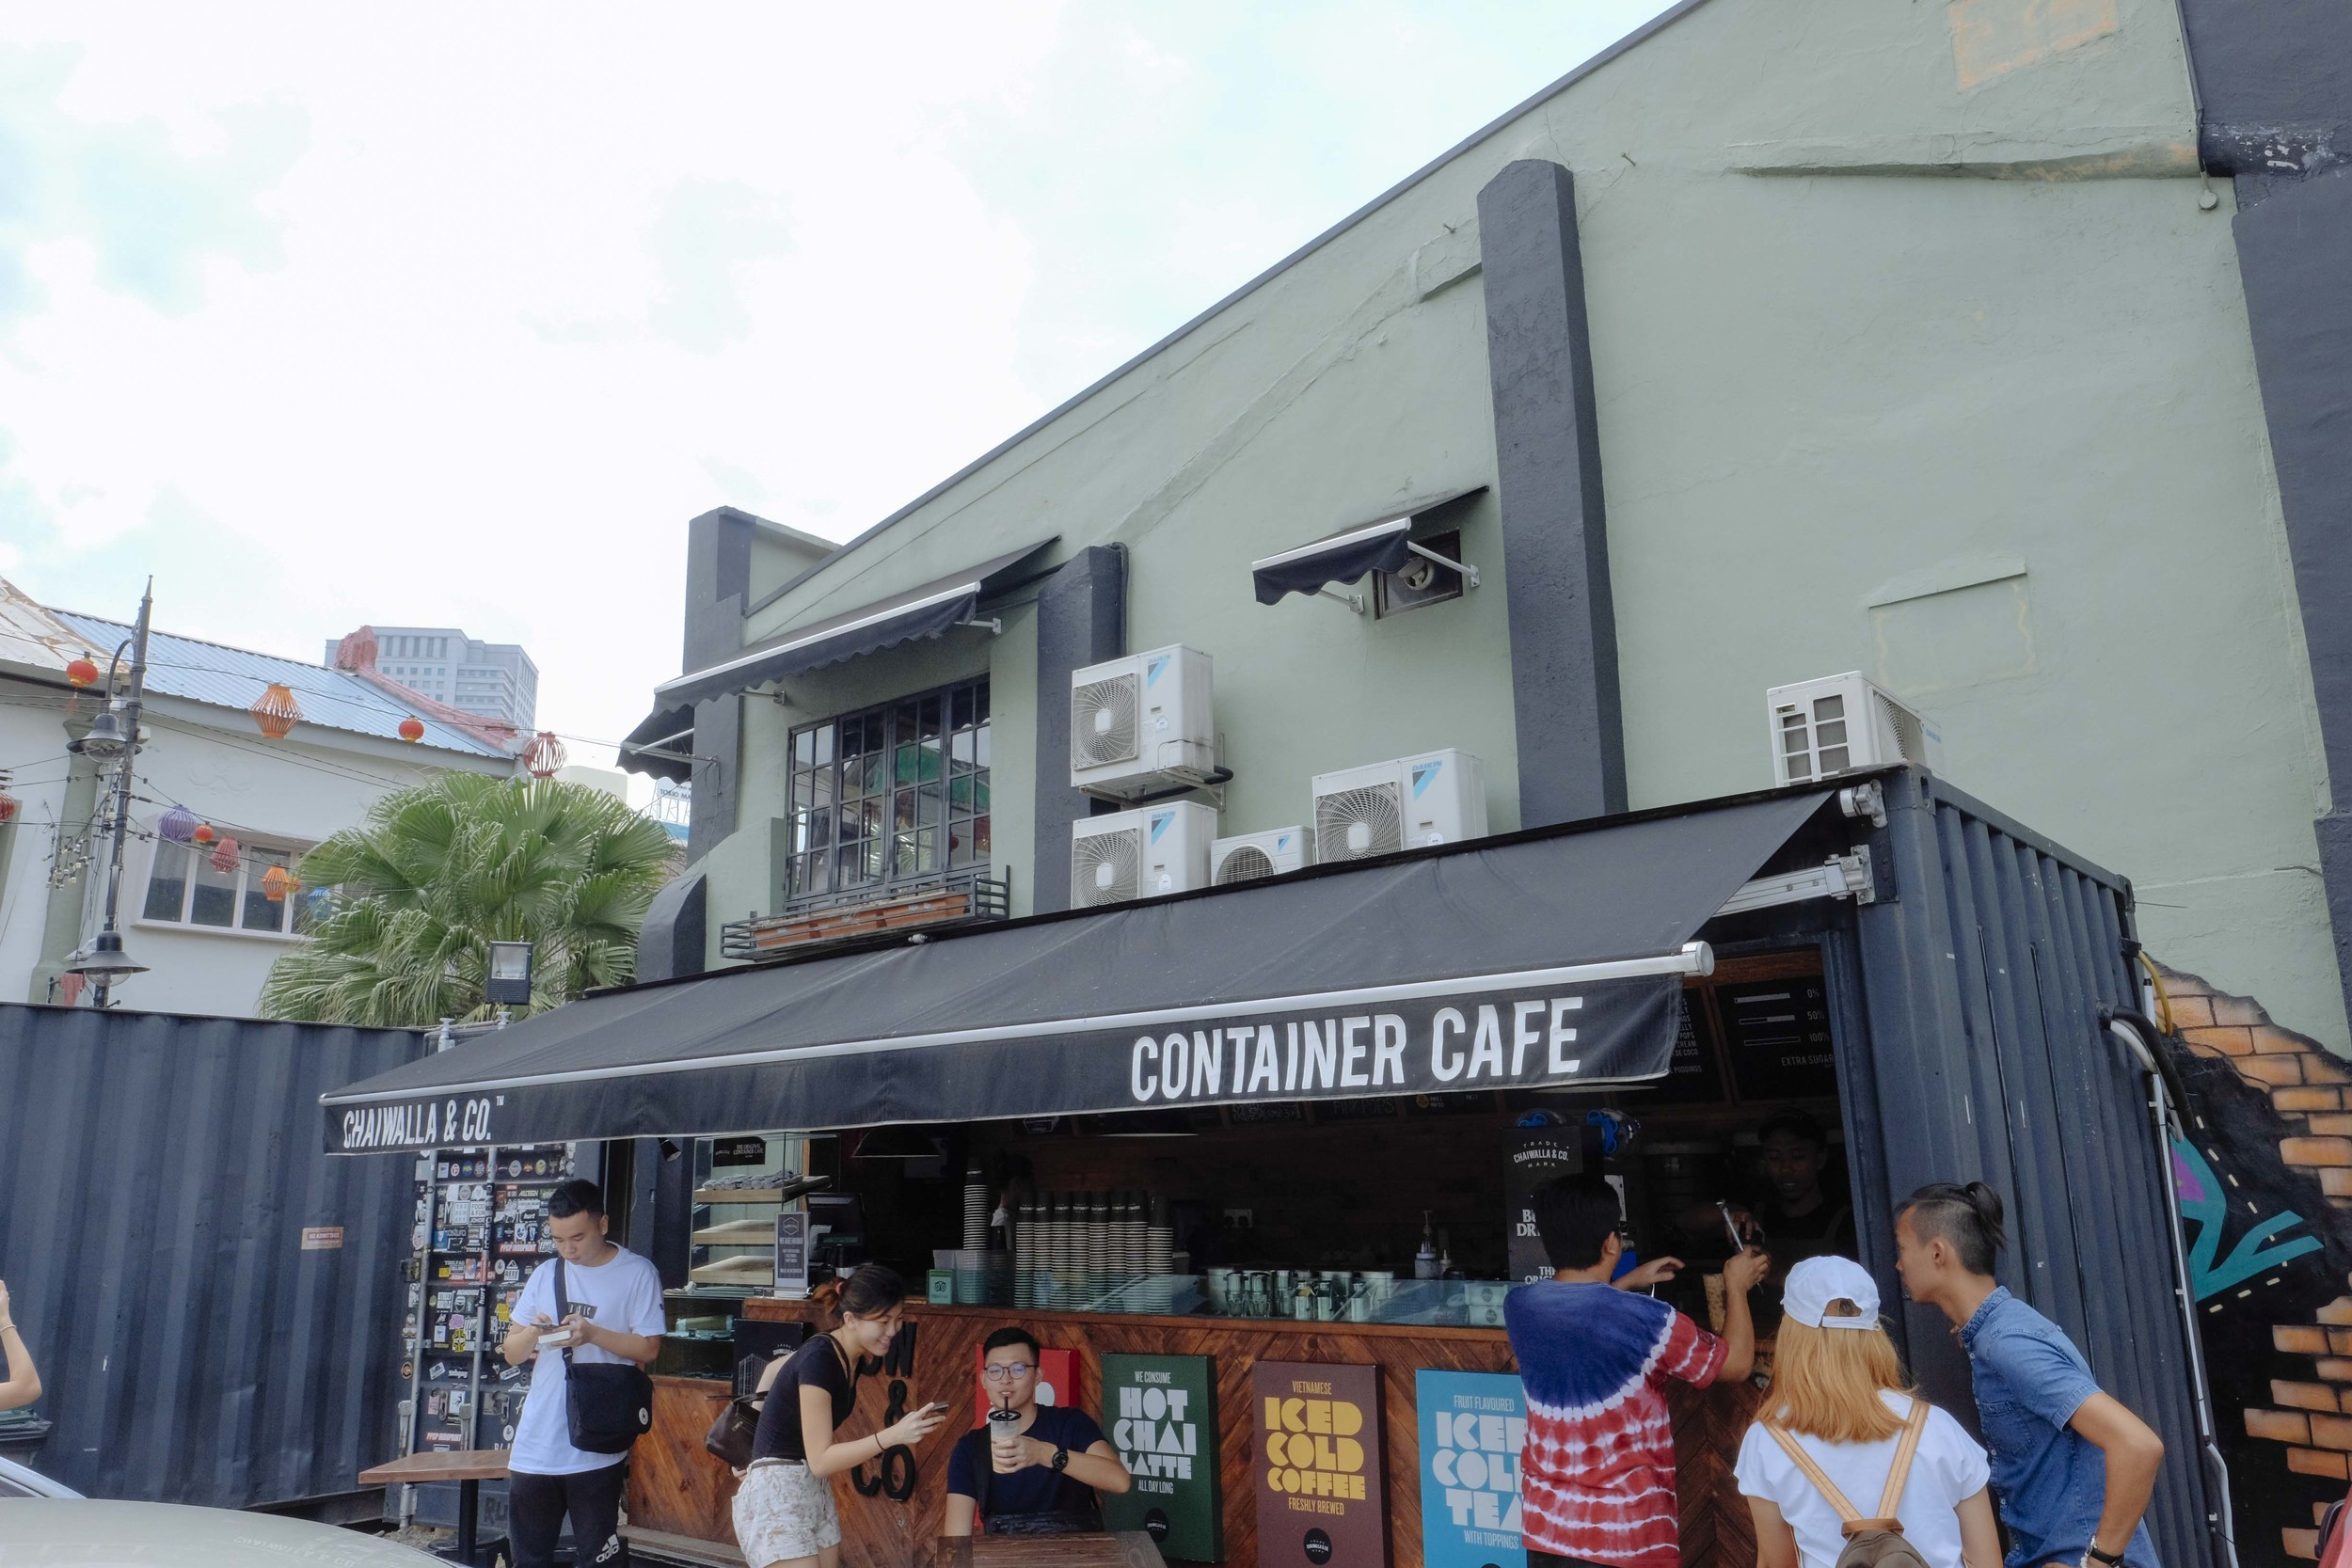 The Chaiwalla Container Cafe